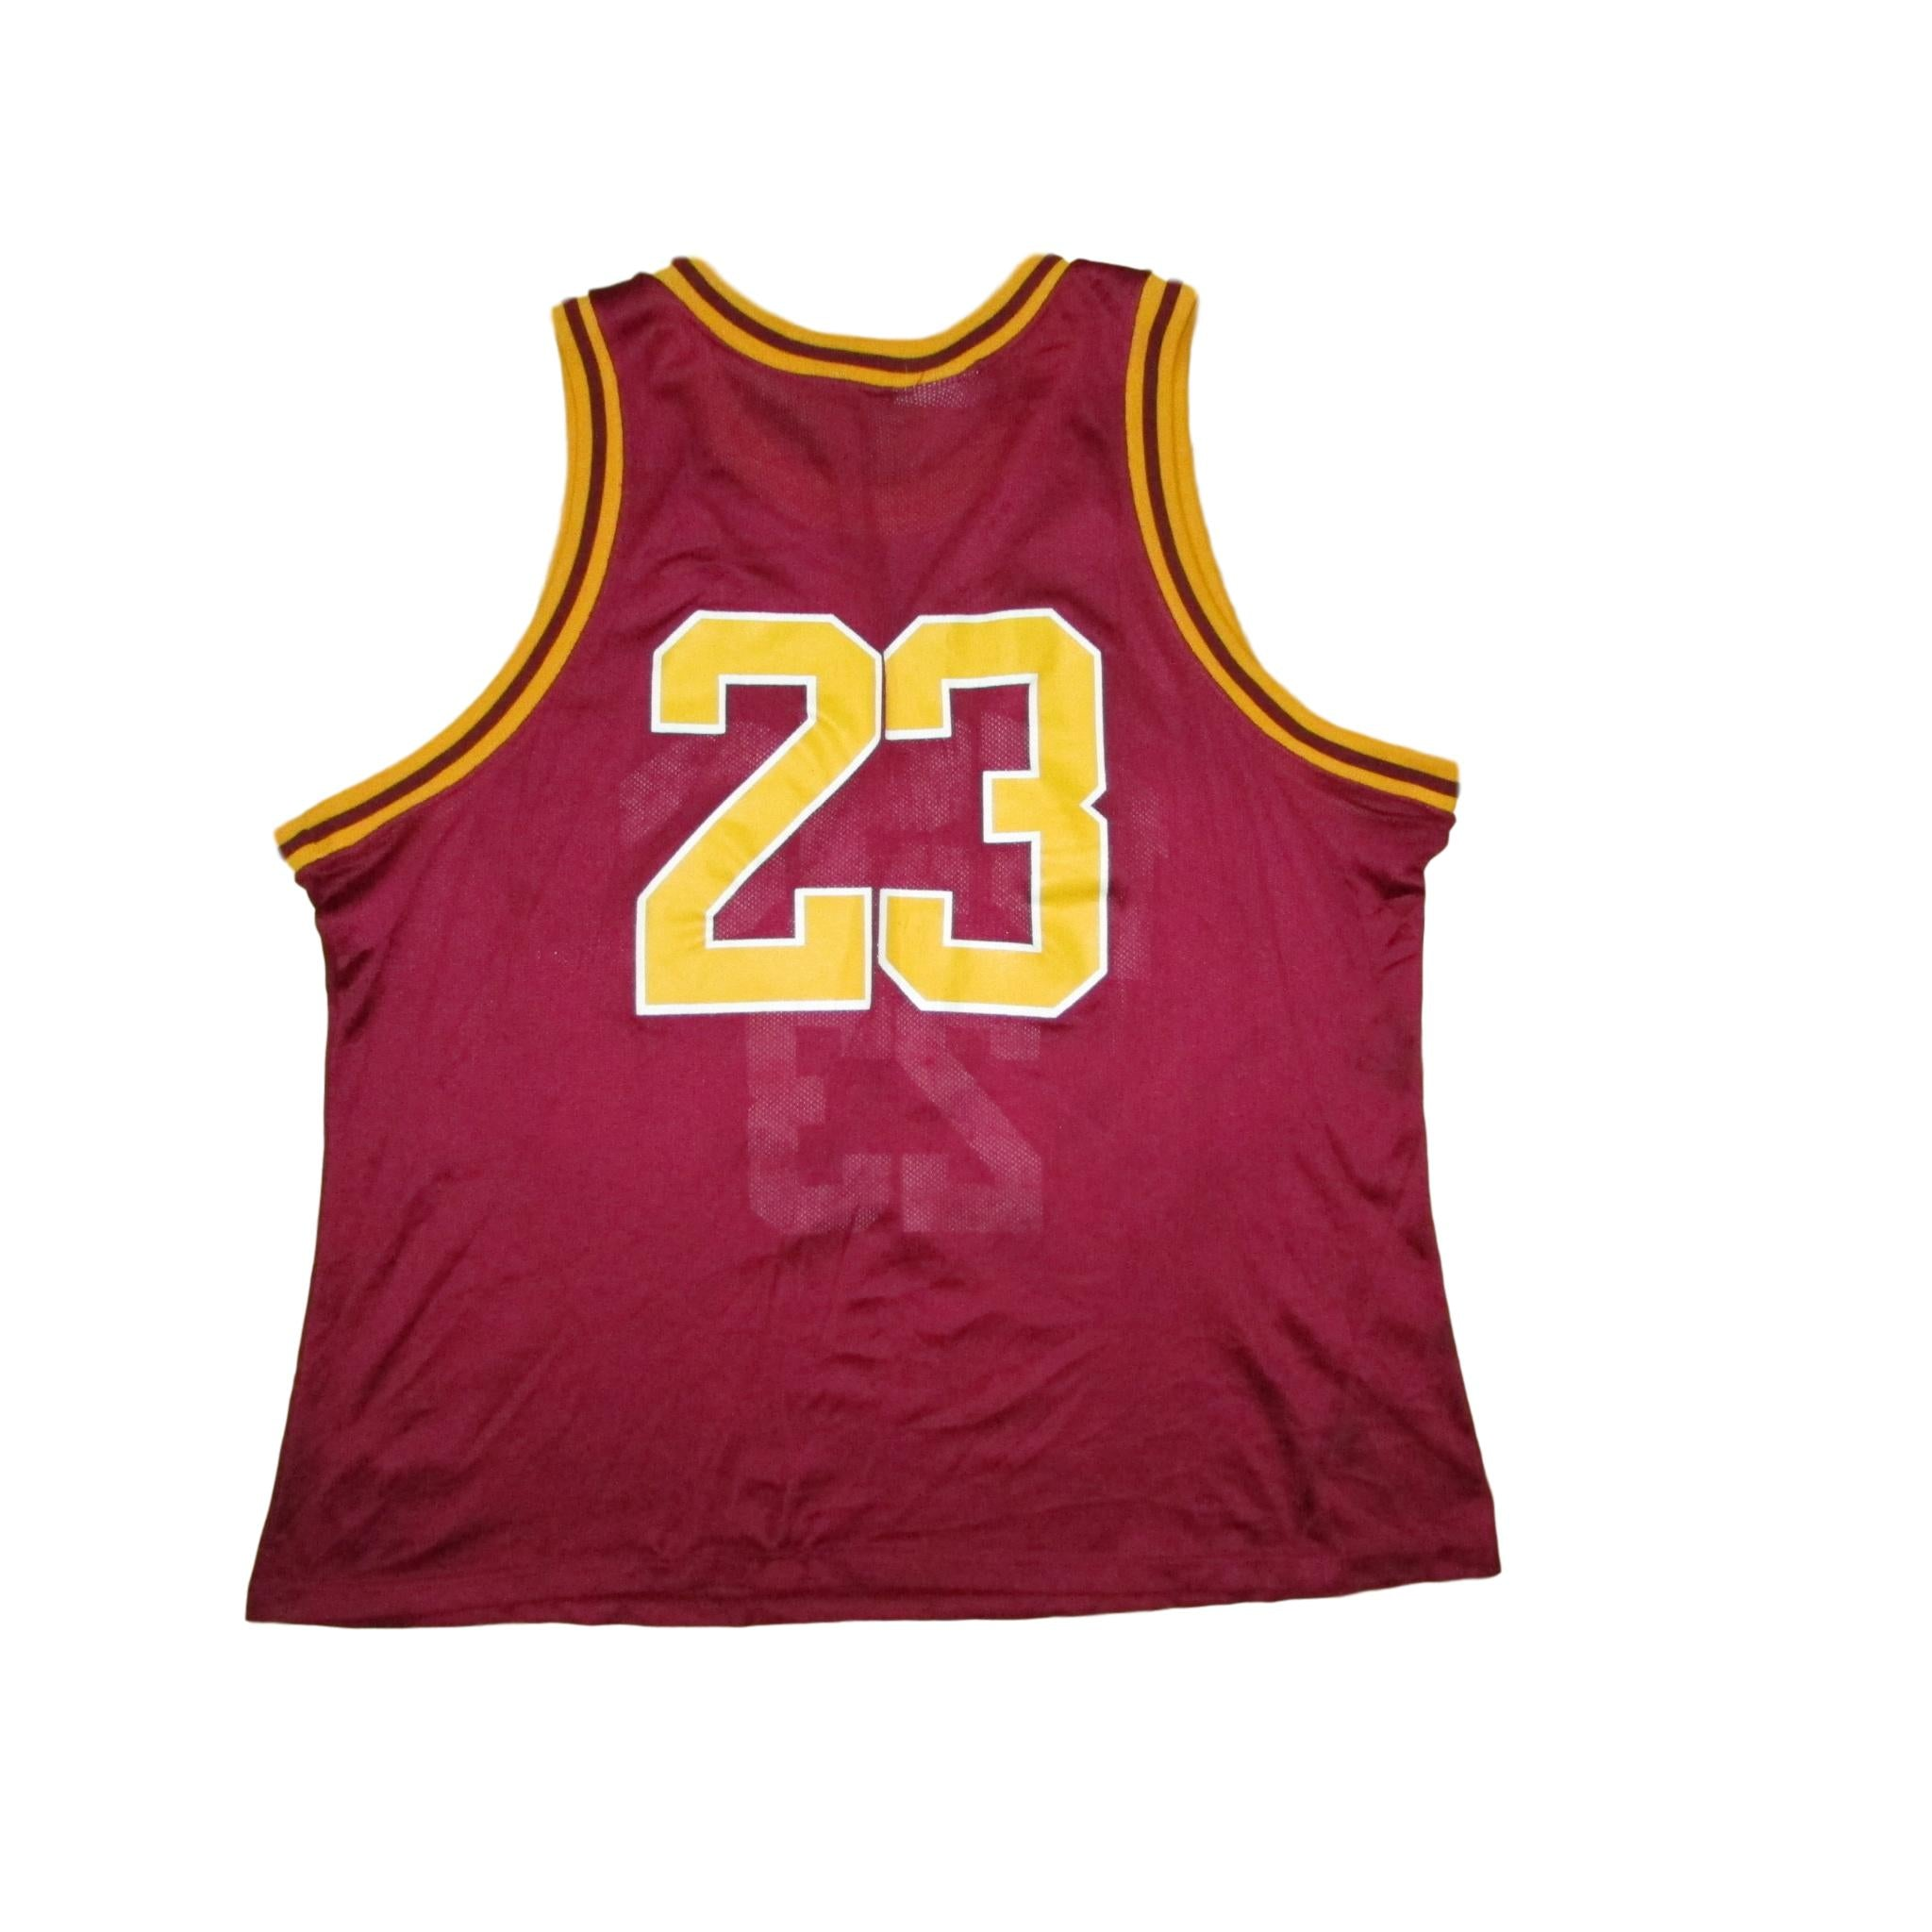 USC Trojans Vintage Basketball Jersey #23 Team Edition Sz XL